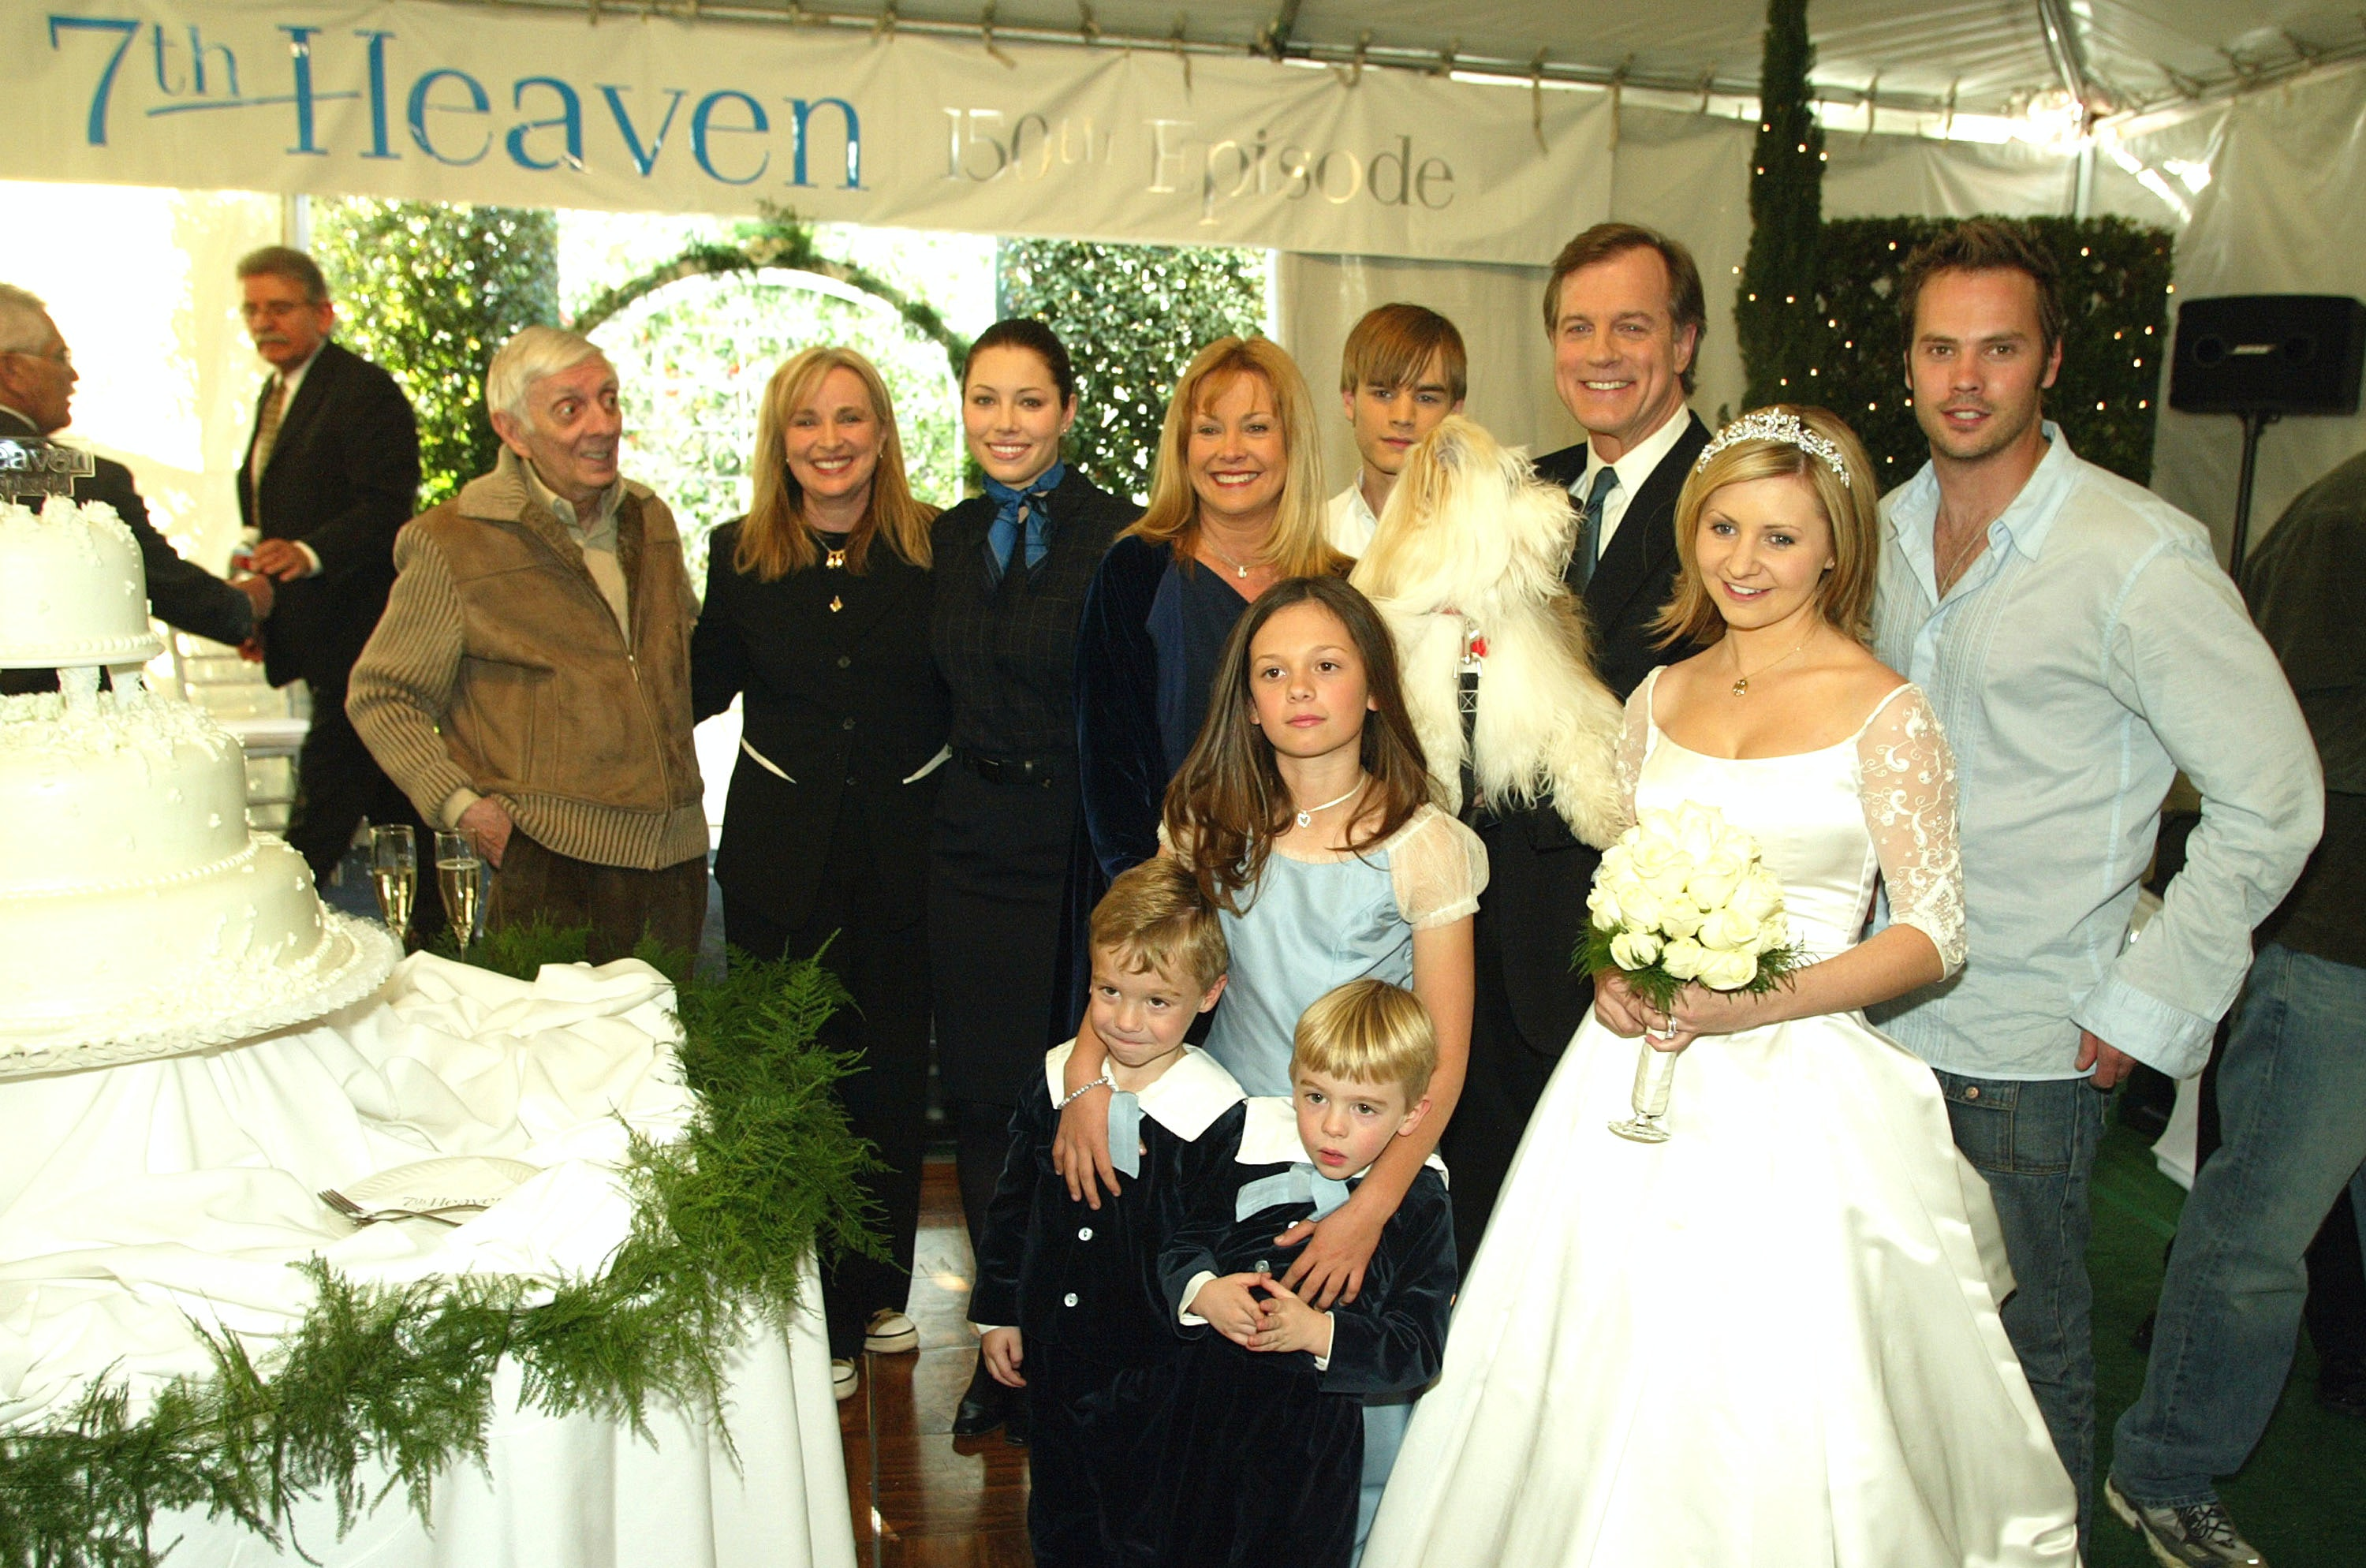 7th Heaven S Beverley Mitchell Is Against Having Nannies That Her Personal Choice